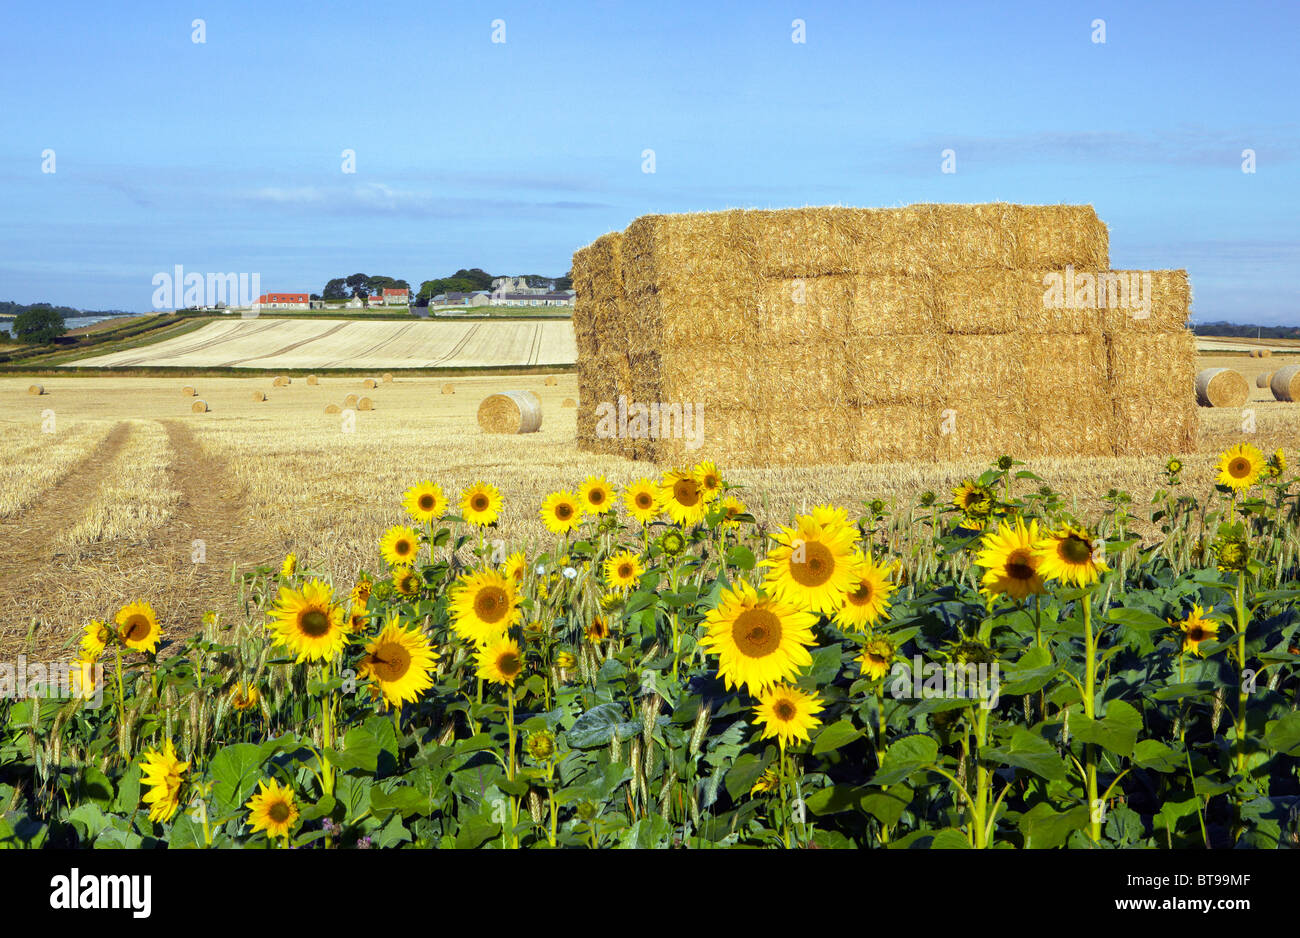 Sunflowers used as conservation headland on a farm at Beal in Northumberland - Stock Image